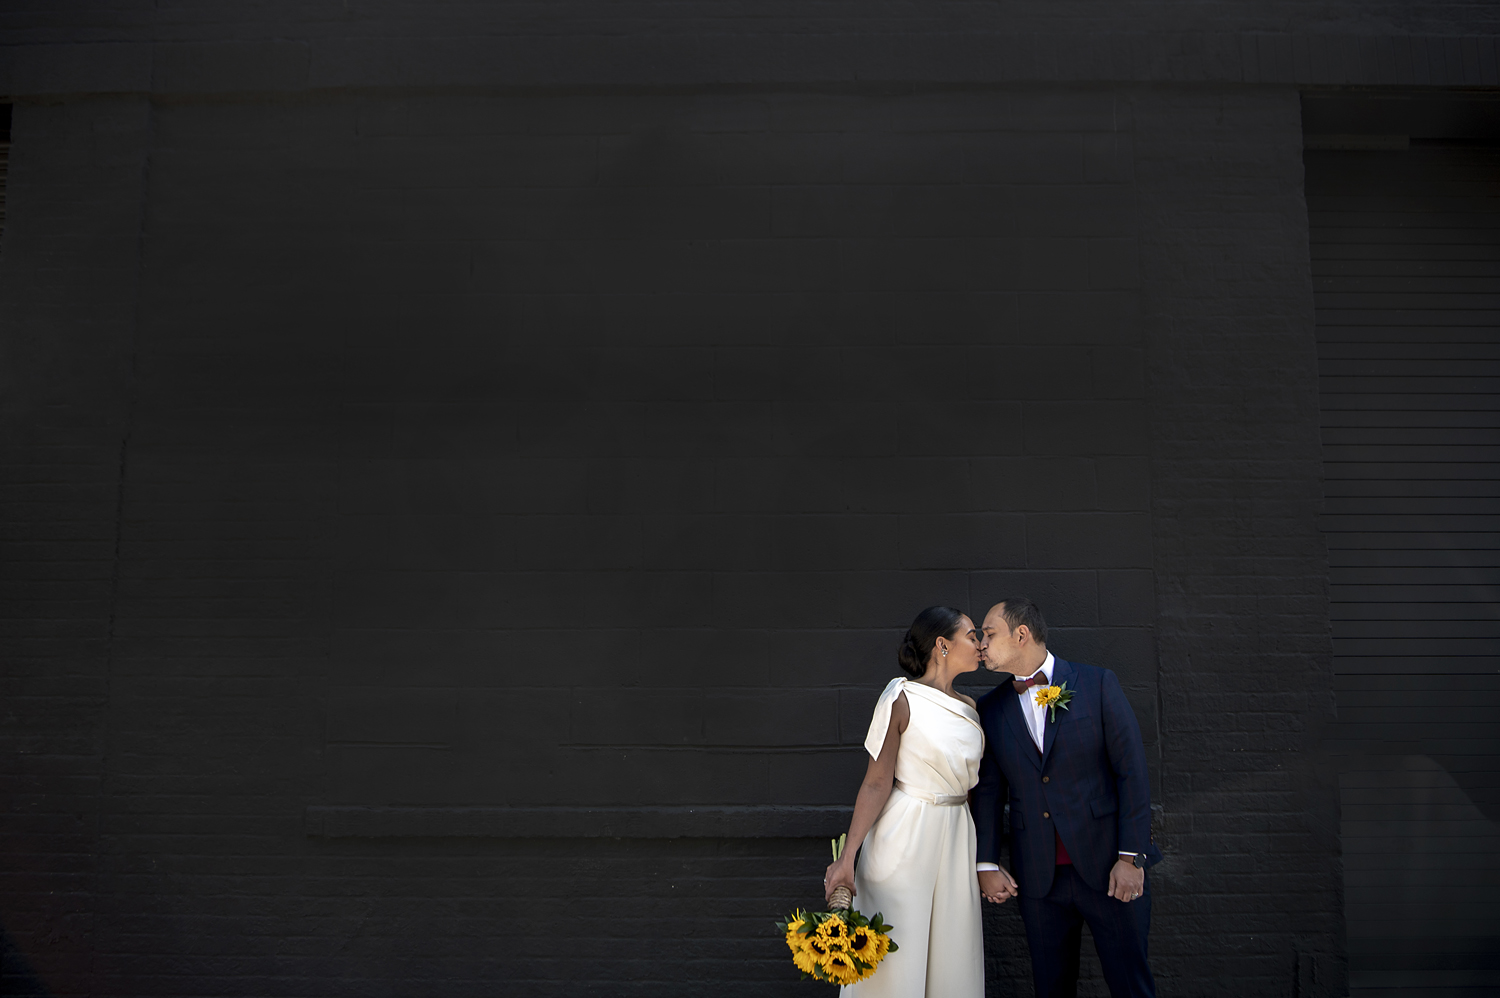 portrait of bride and groom after their wedding ceremony at The Foundry in Long Island City, NY. NYC wedding photographer